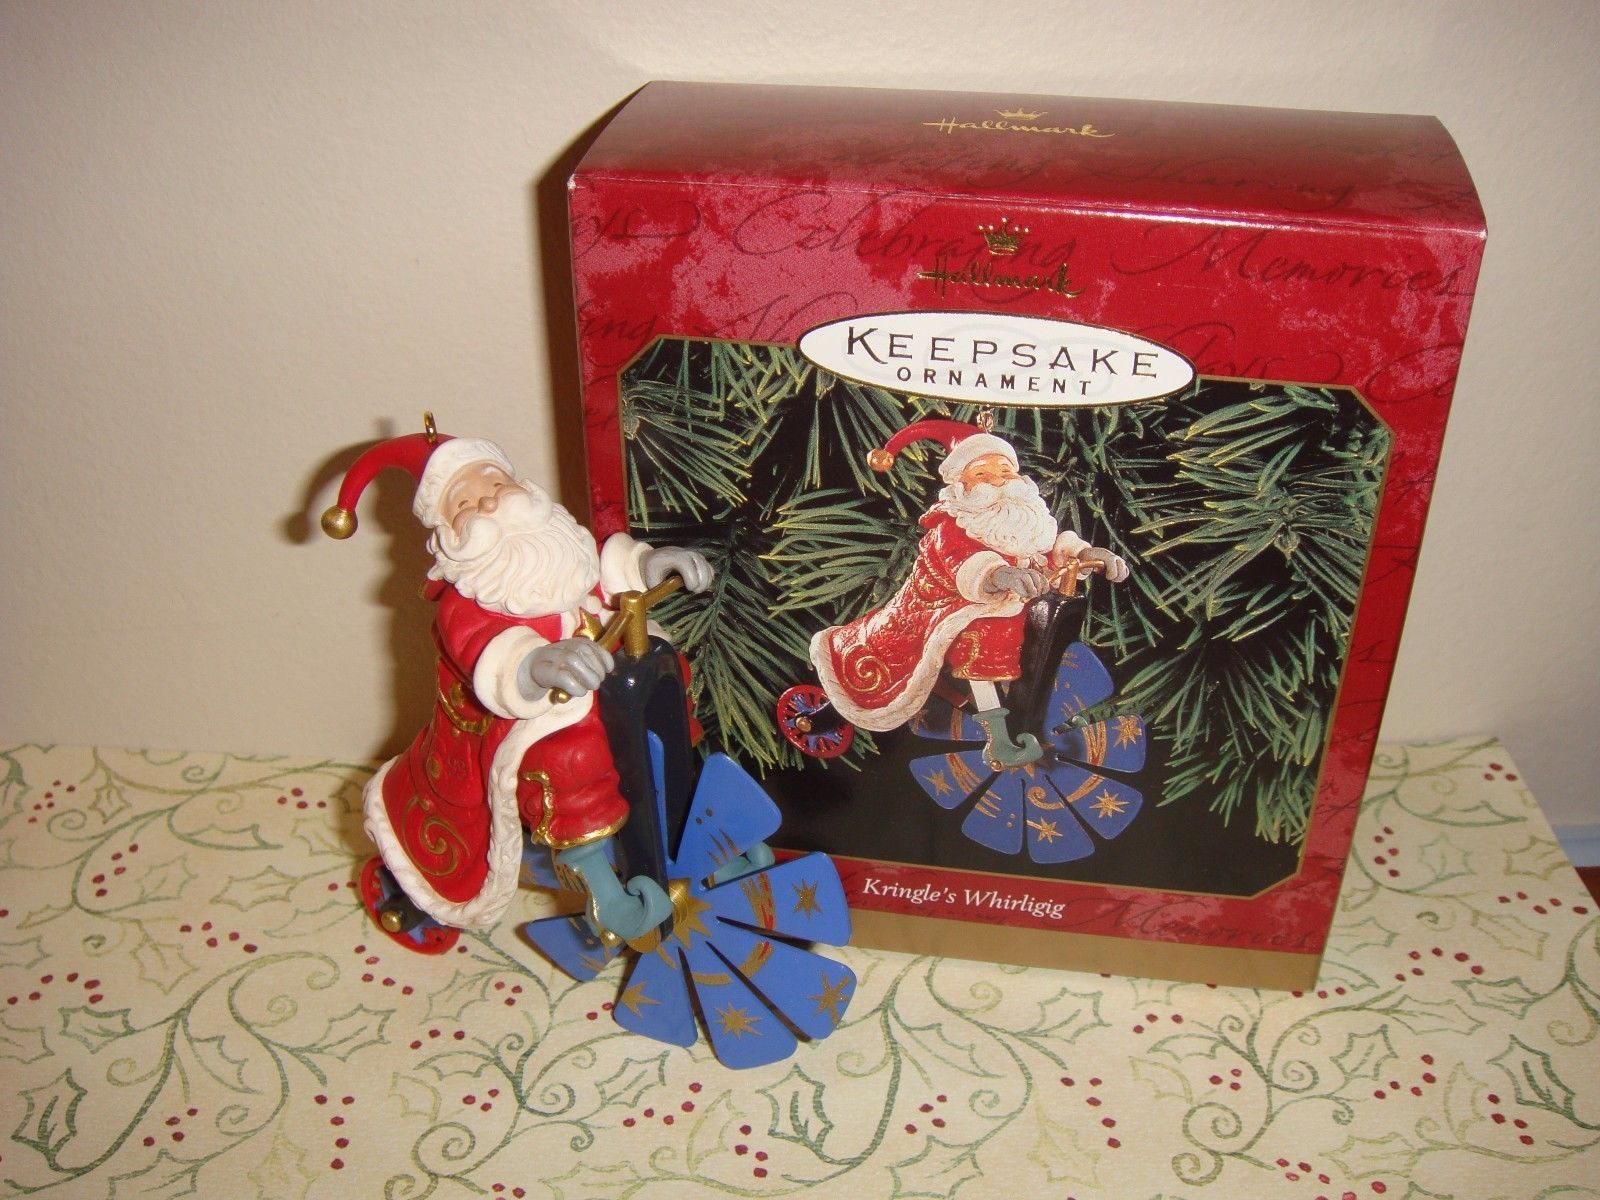 Primary image for Hallmark 1999 Kringle's Whirligig Ornament